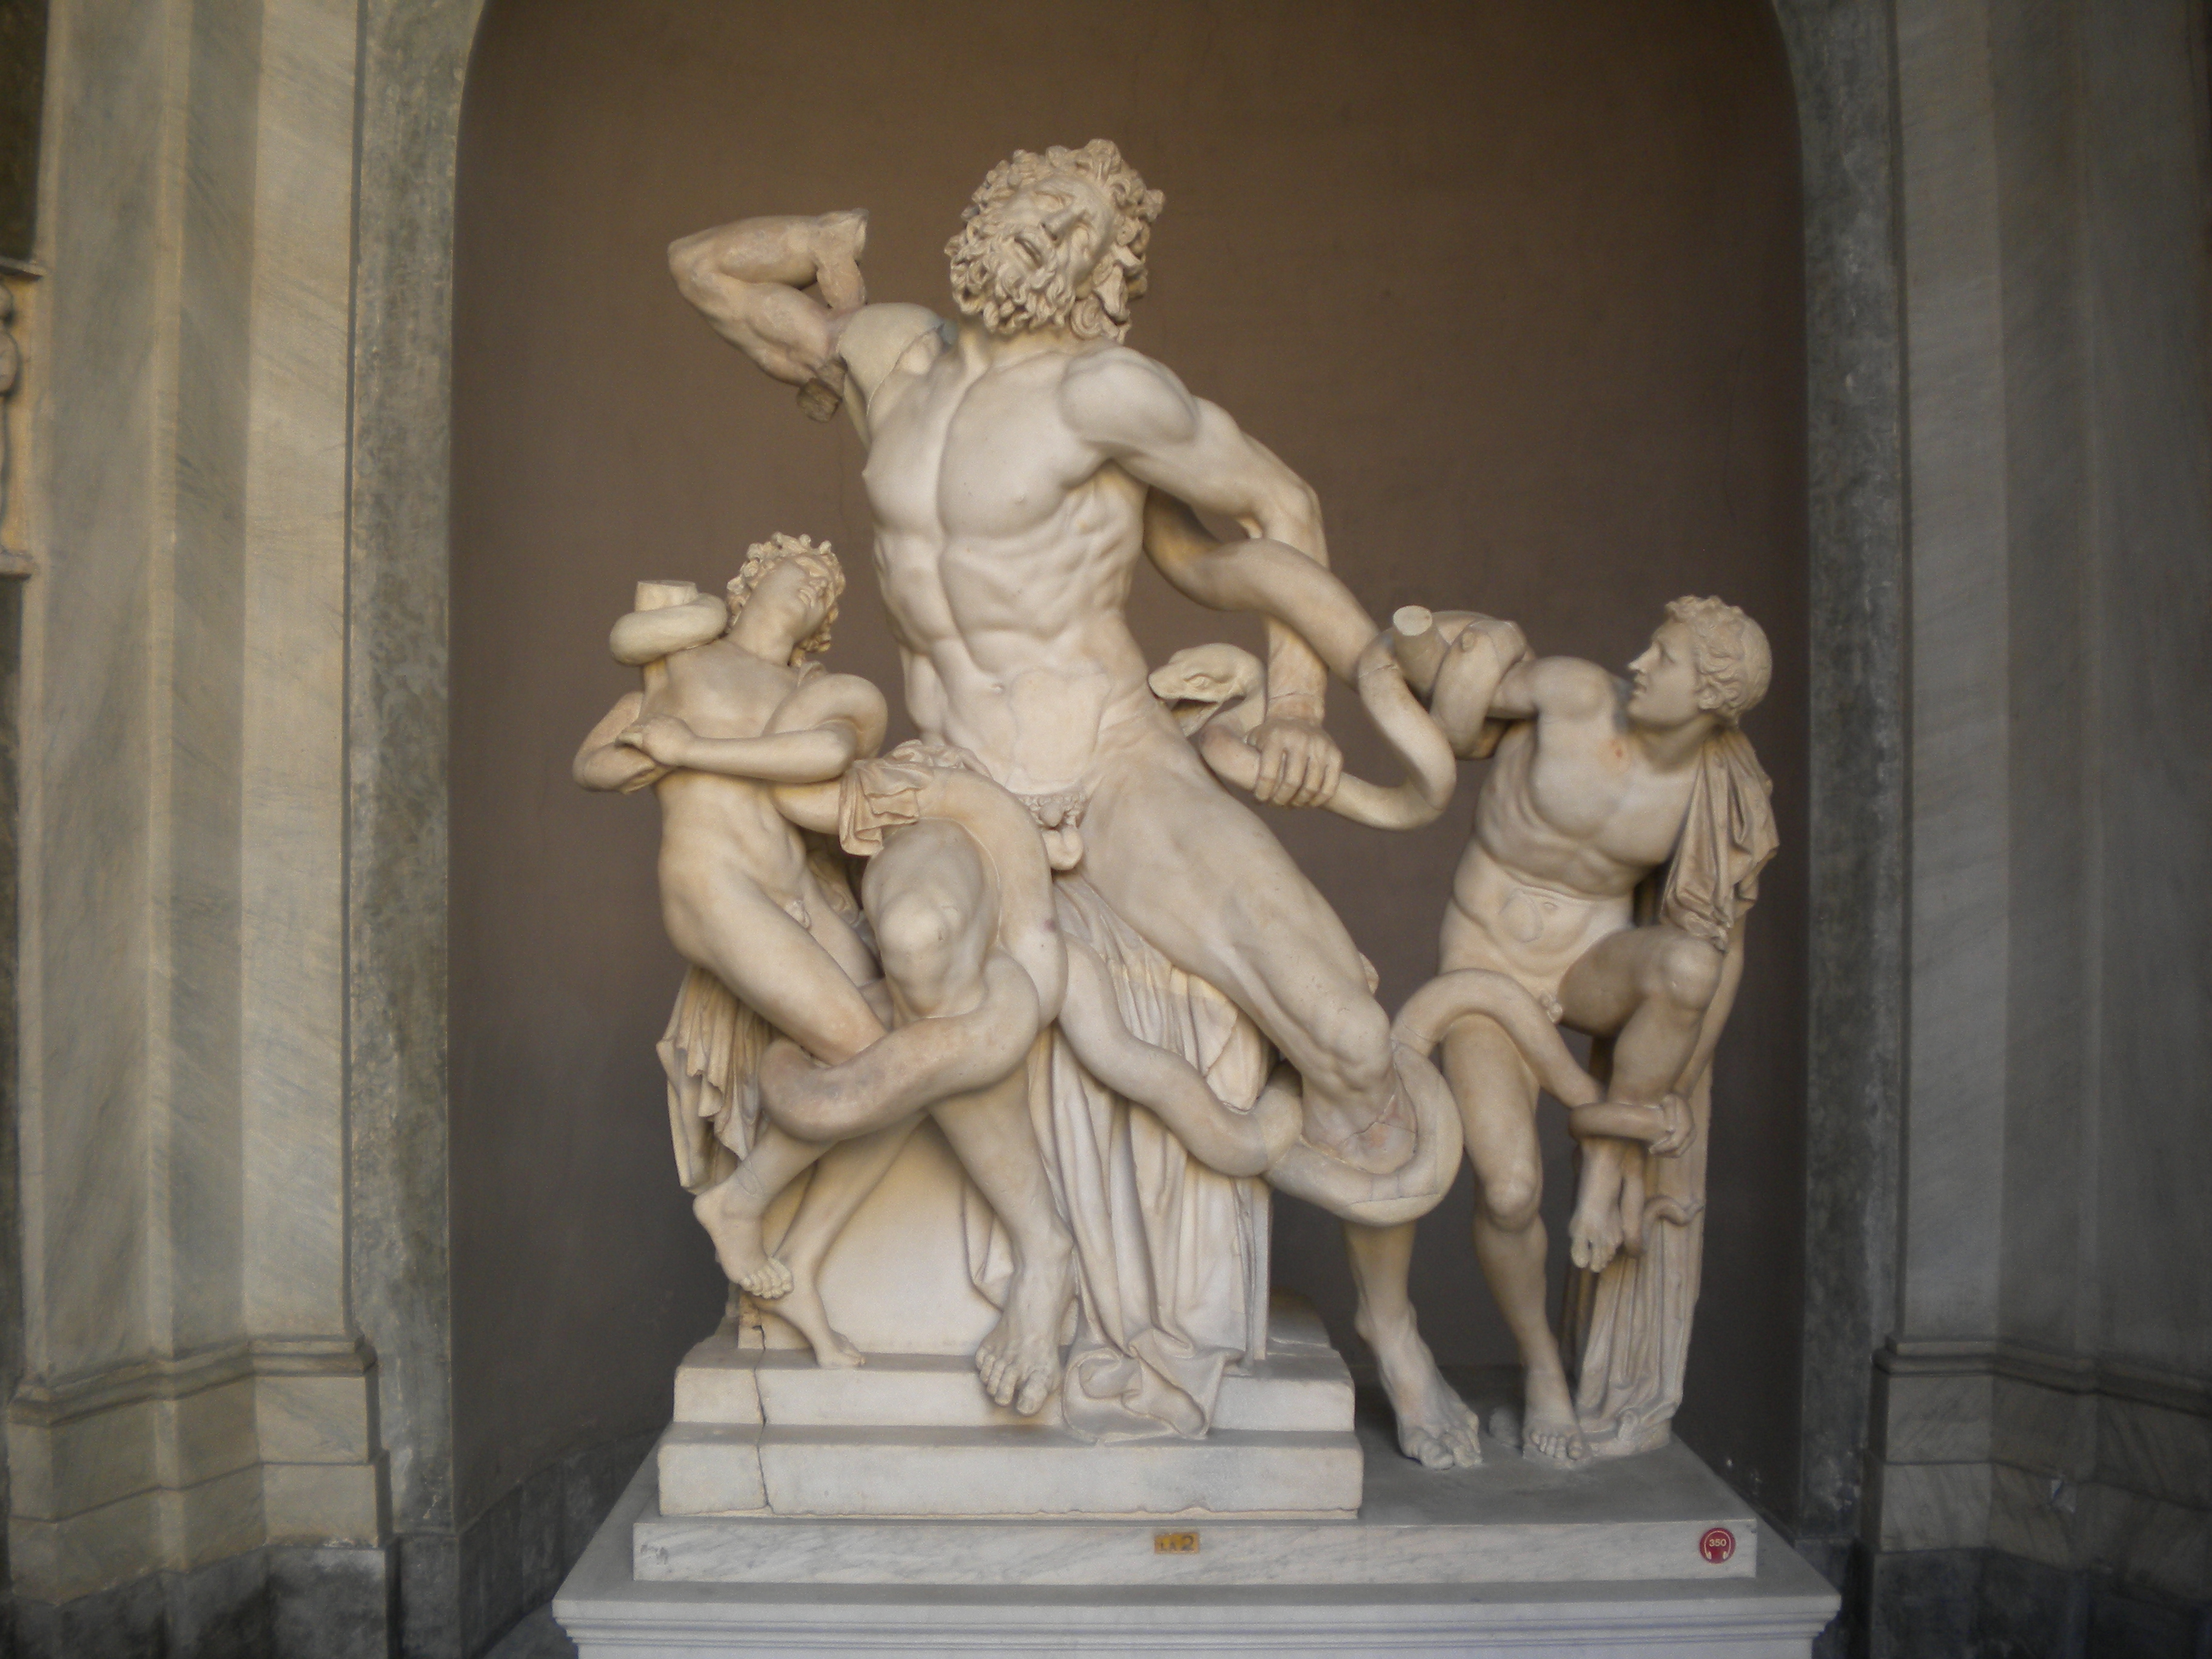 Vatican Museums 2 – Laocoon | Temporarily Lost